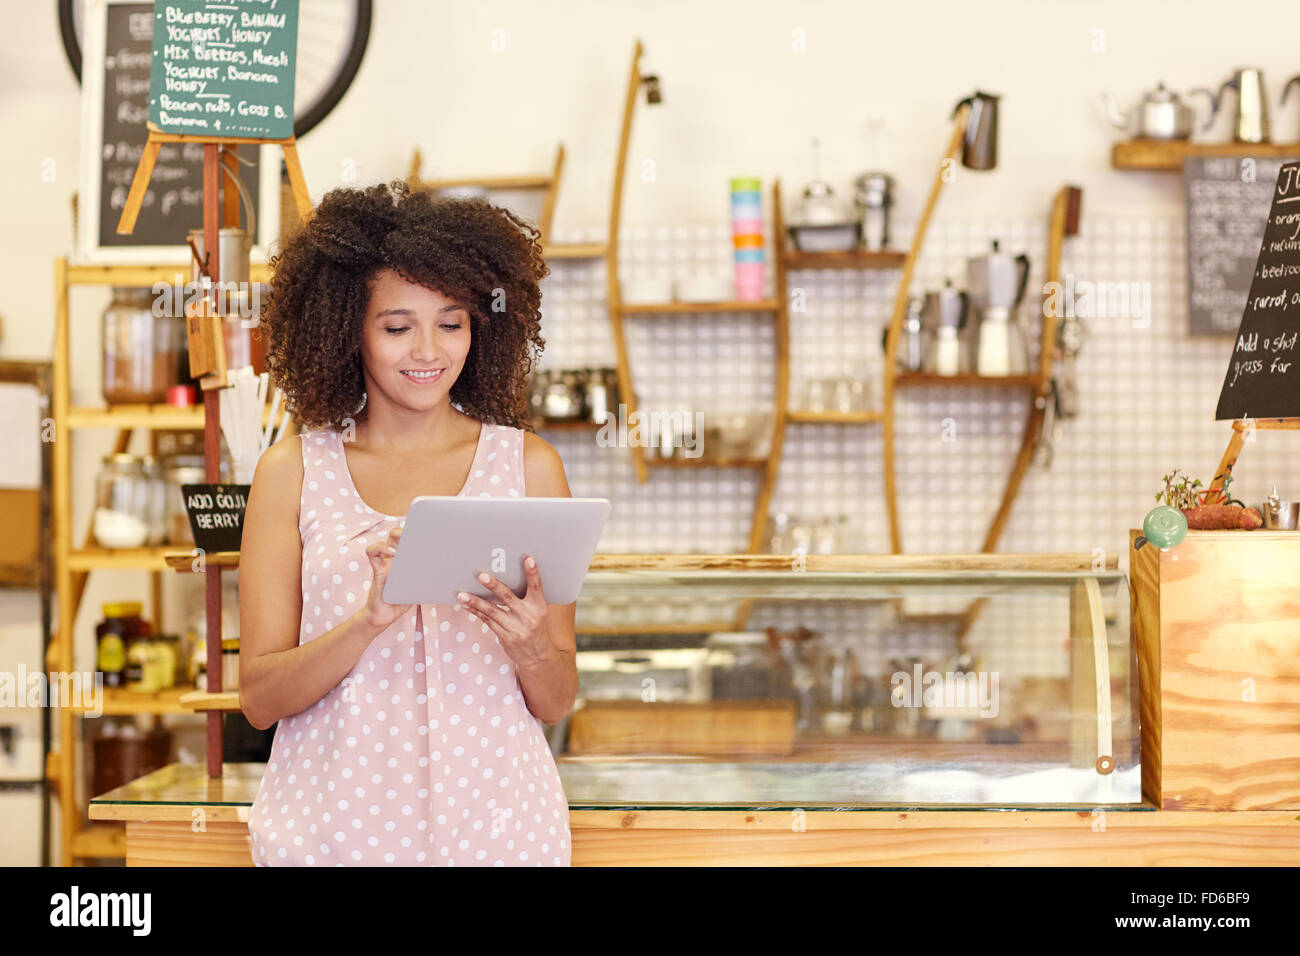 Small business owner using a tablet in her coffee shop - Stock Image